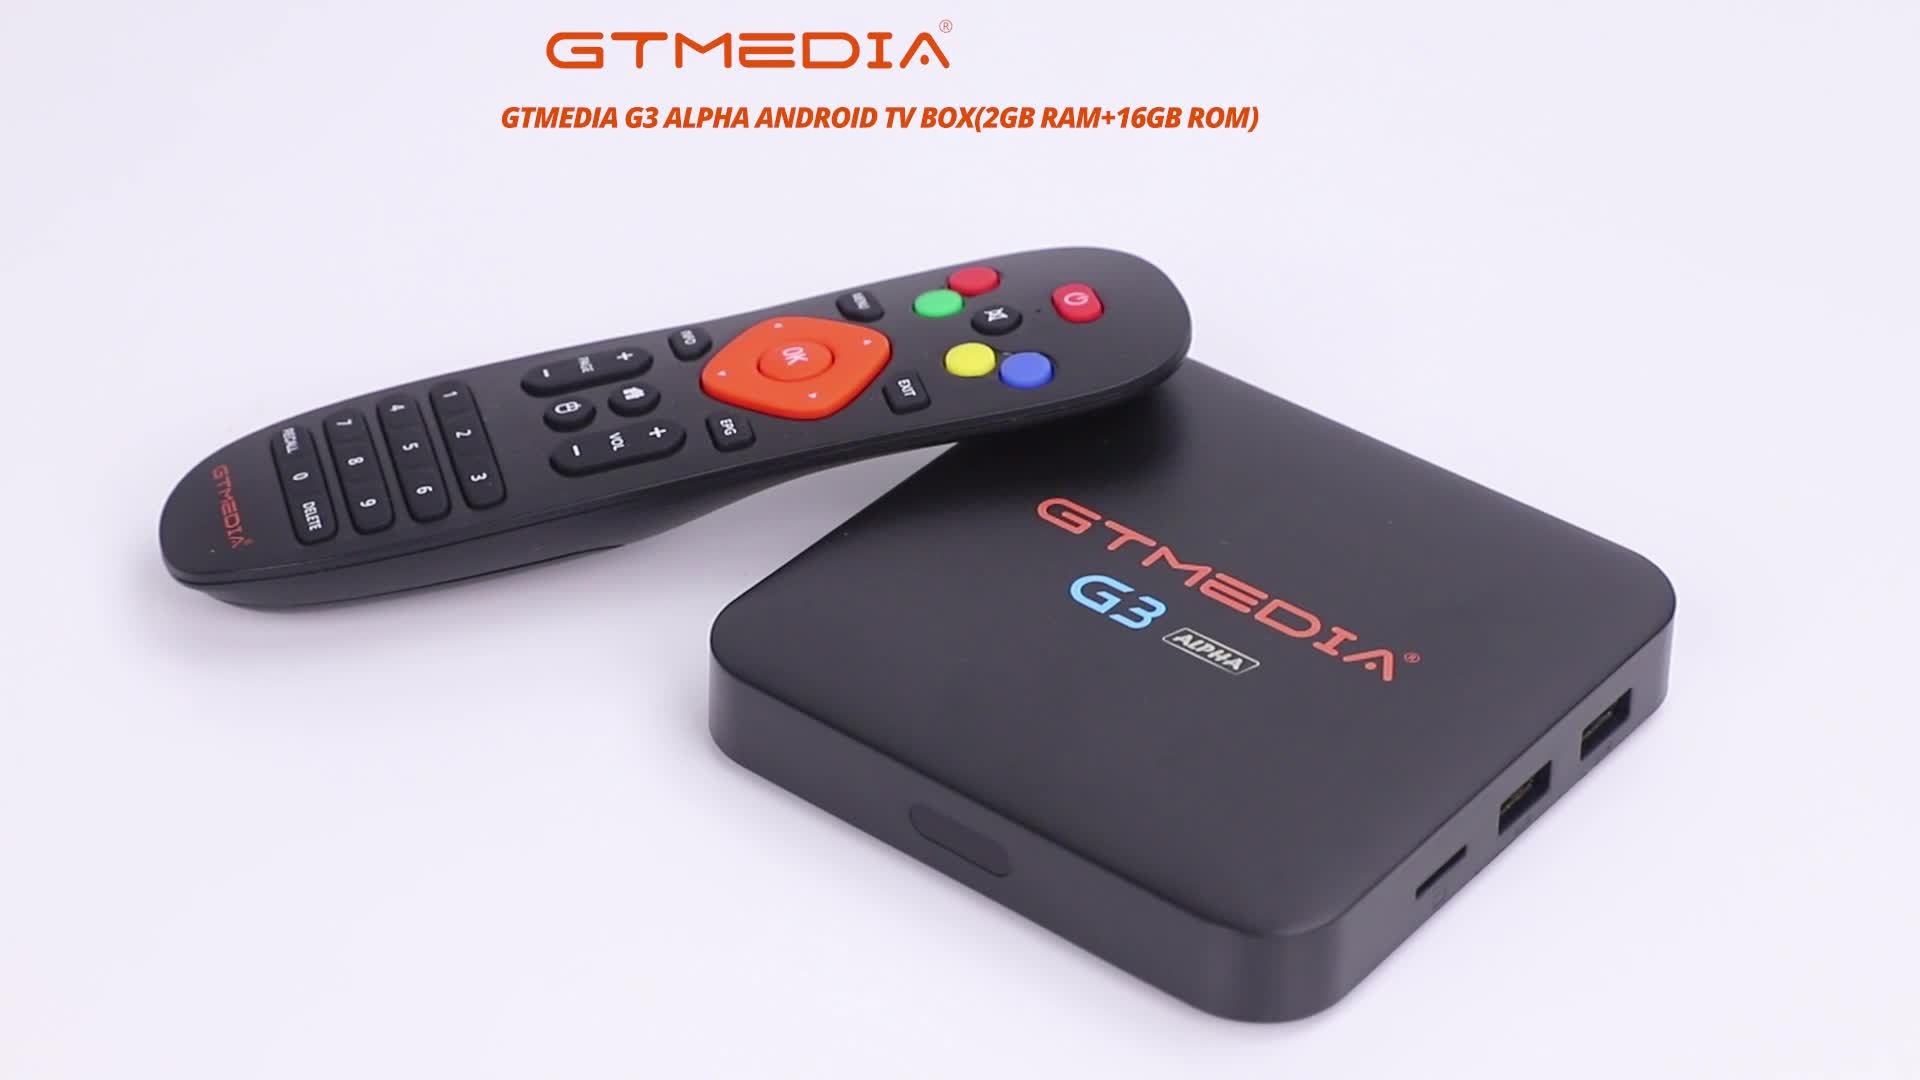 GTMedia G3 Alpha Smart Media Player Free Internet Searching Support IPTV S905X 2G + 16G Android TV Box with AV Output